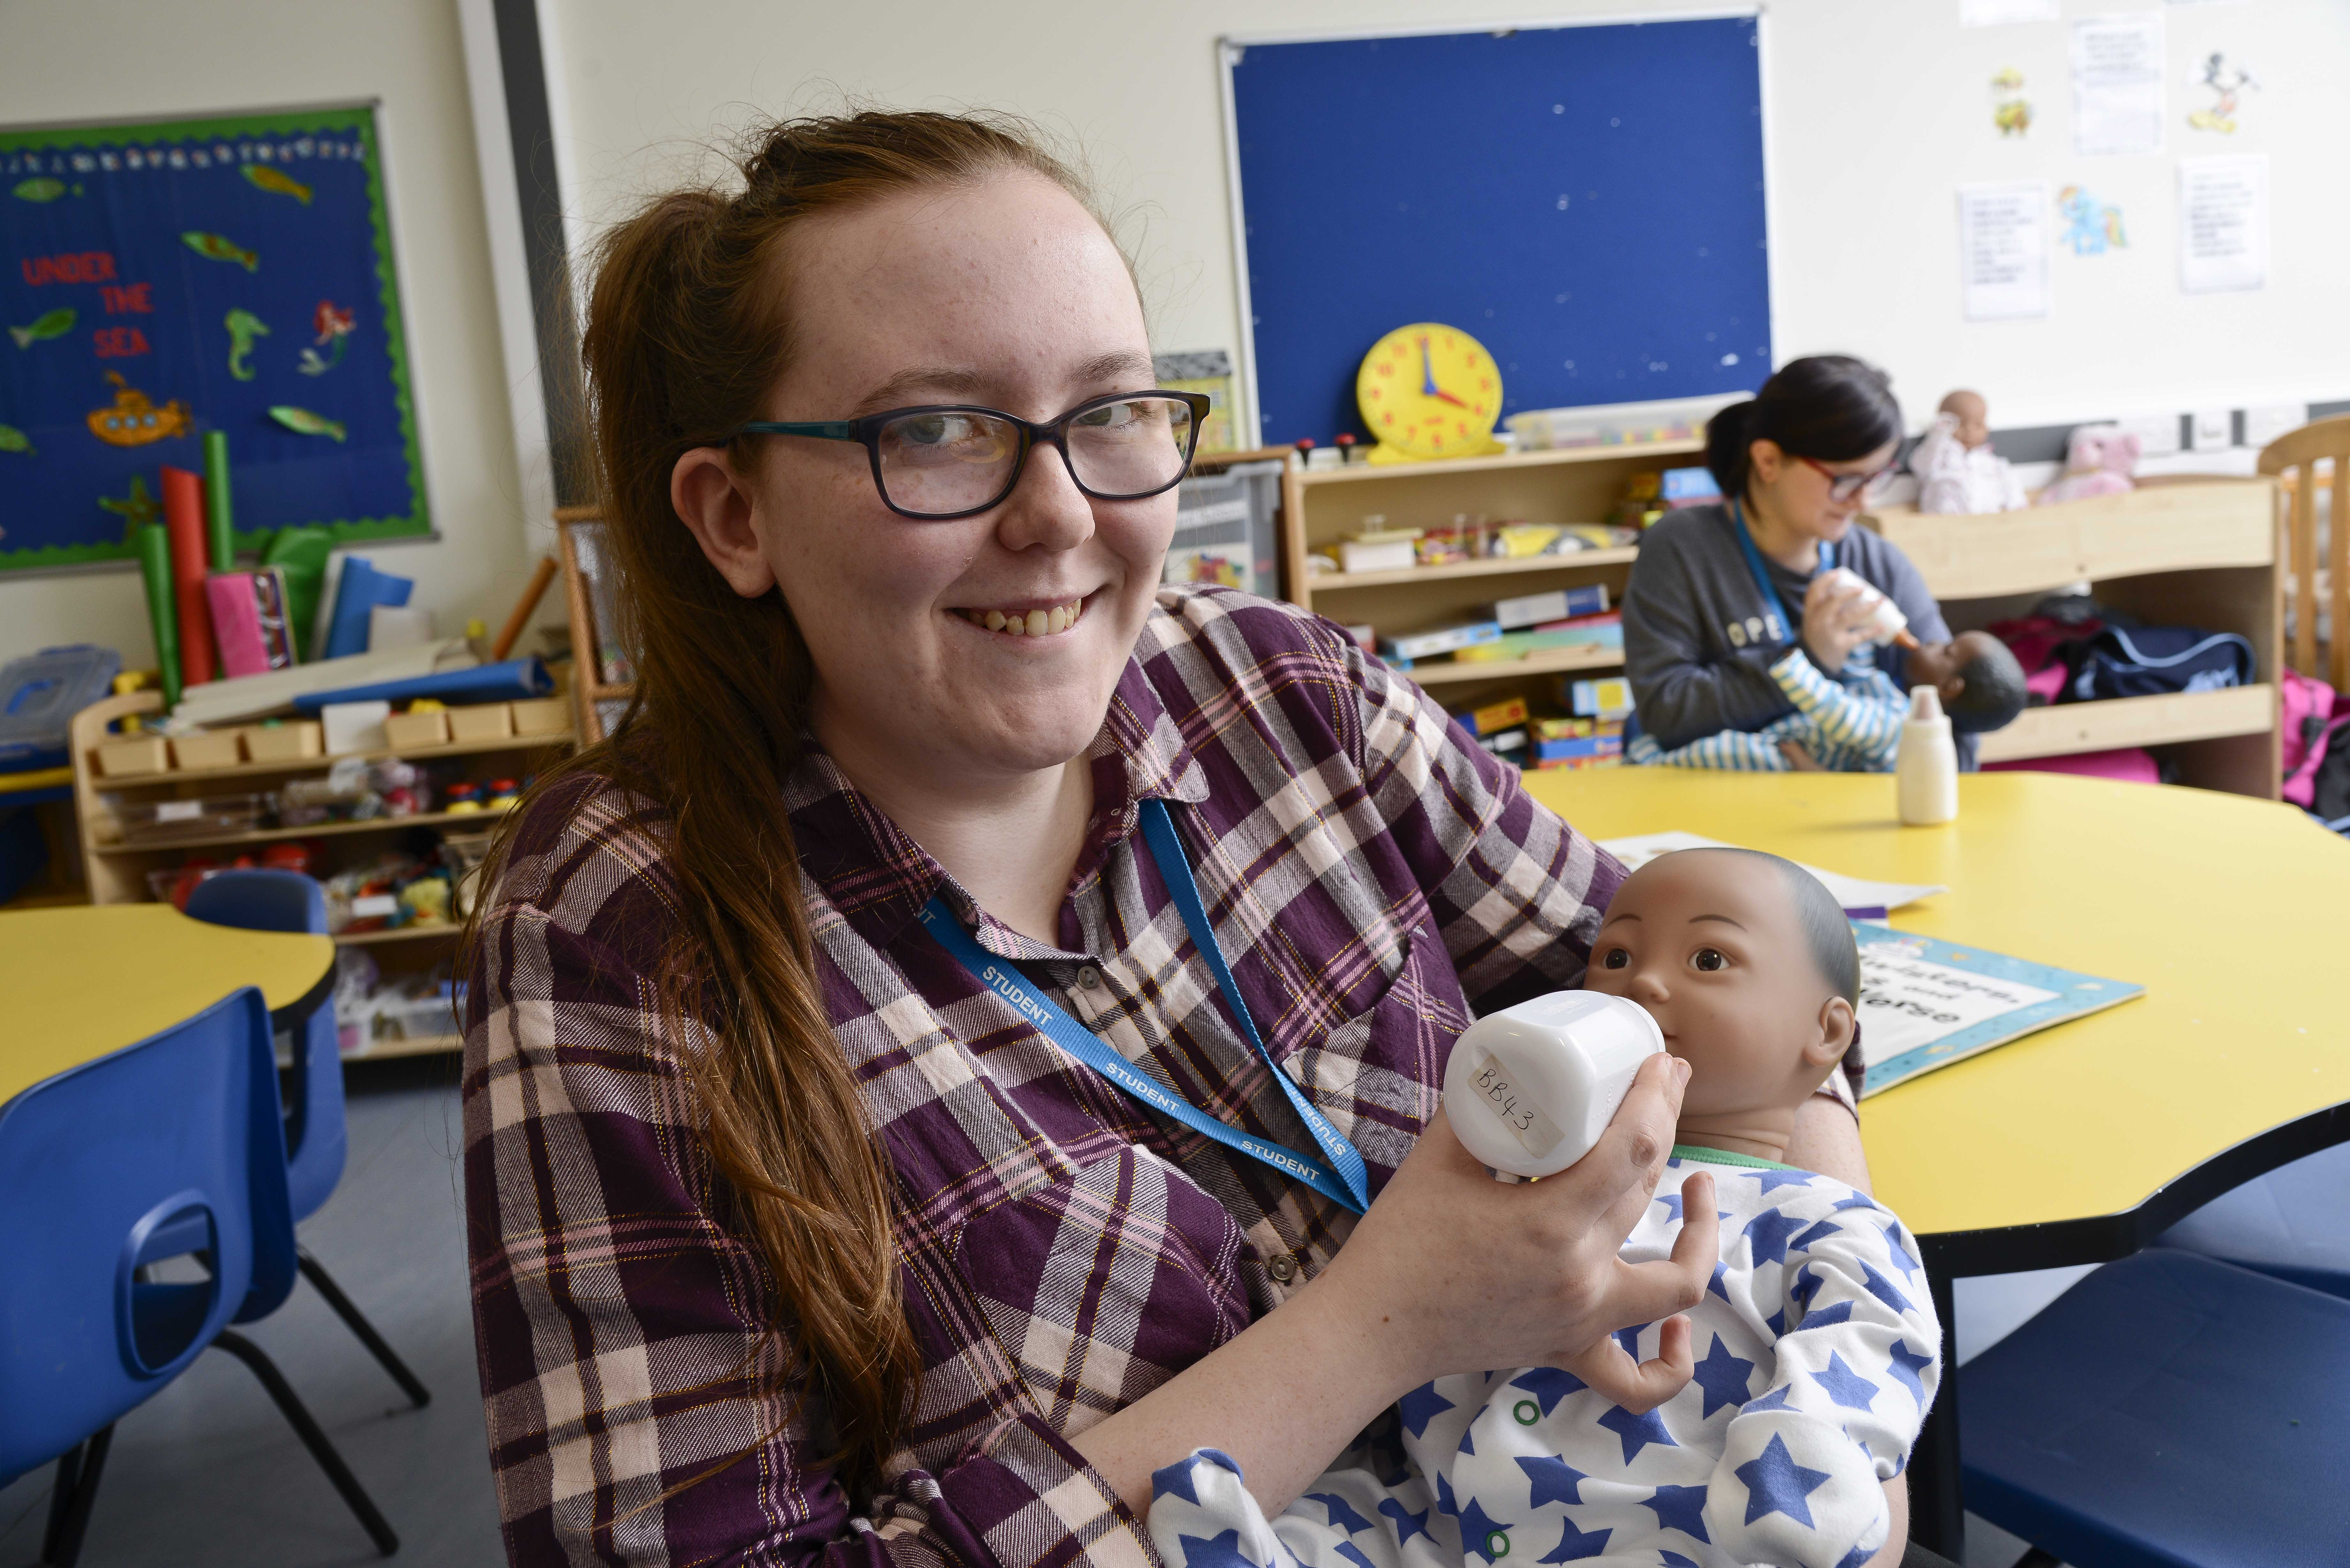 Introduction to Early Years Education and Care CACHE Level 2 Certificate